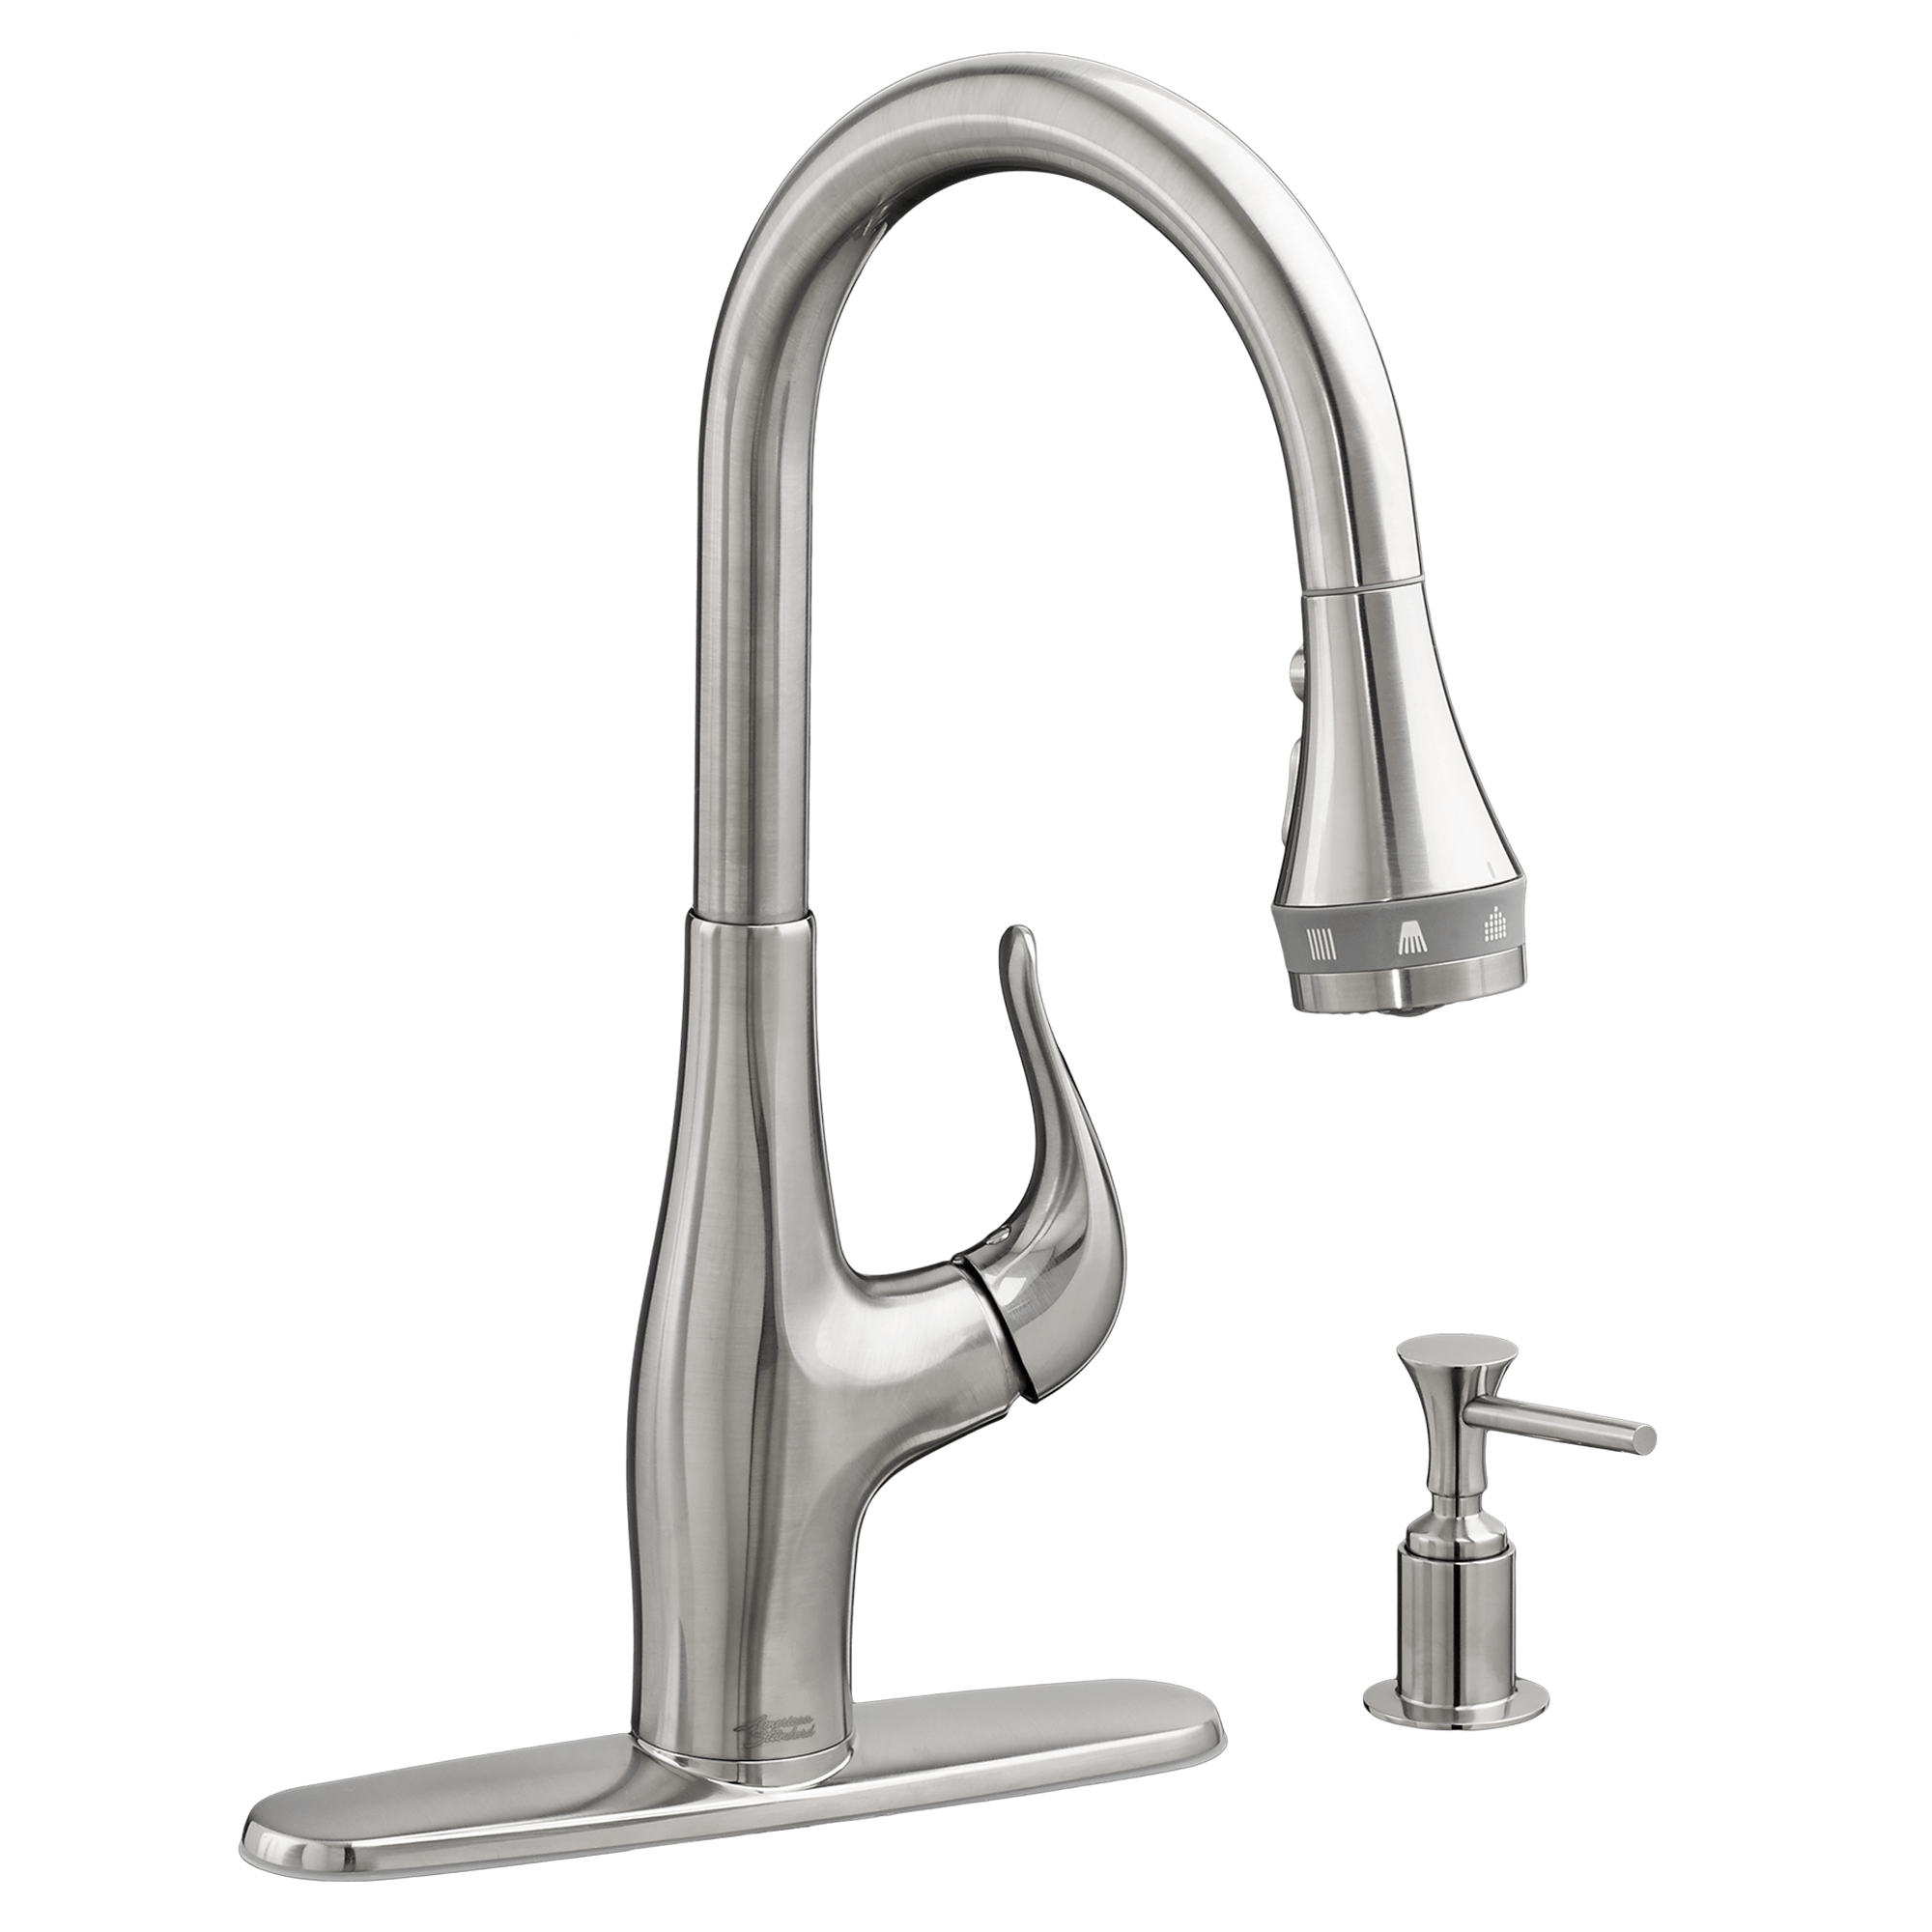 pulldown kitchen faucet where to buy curtains american standard xavier selectflo pull down